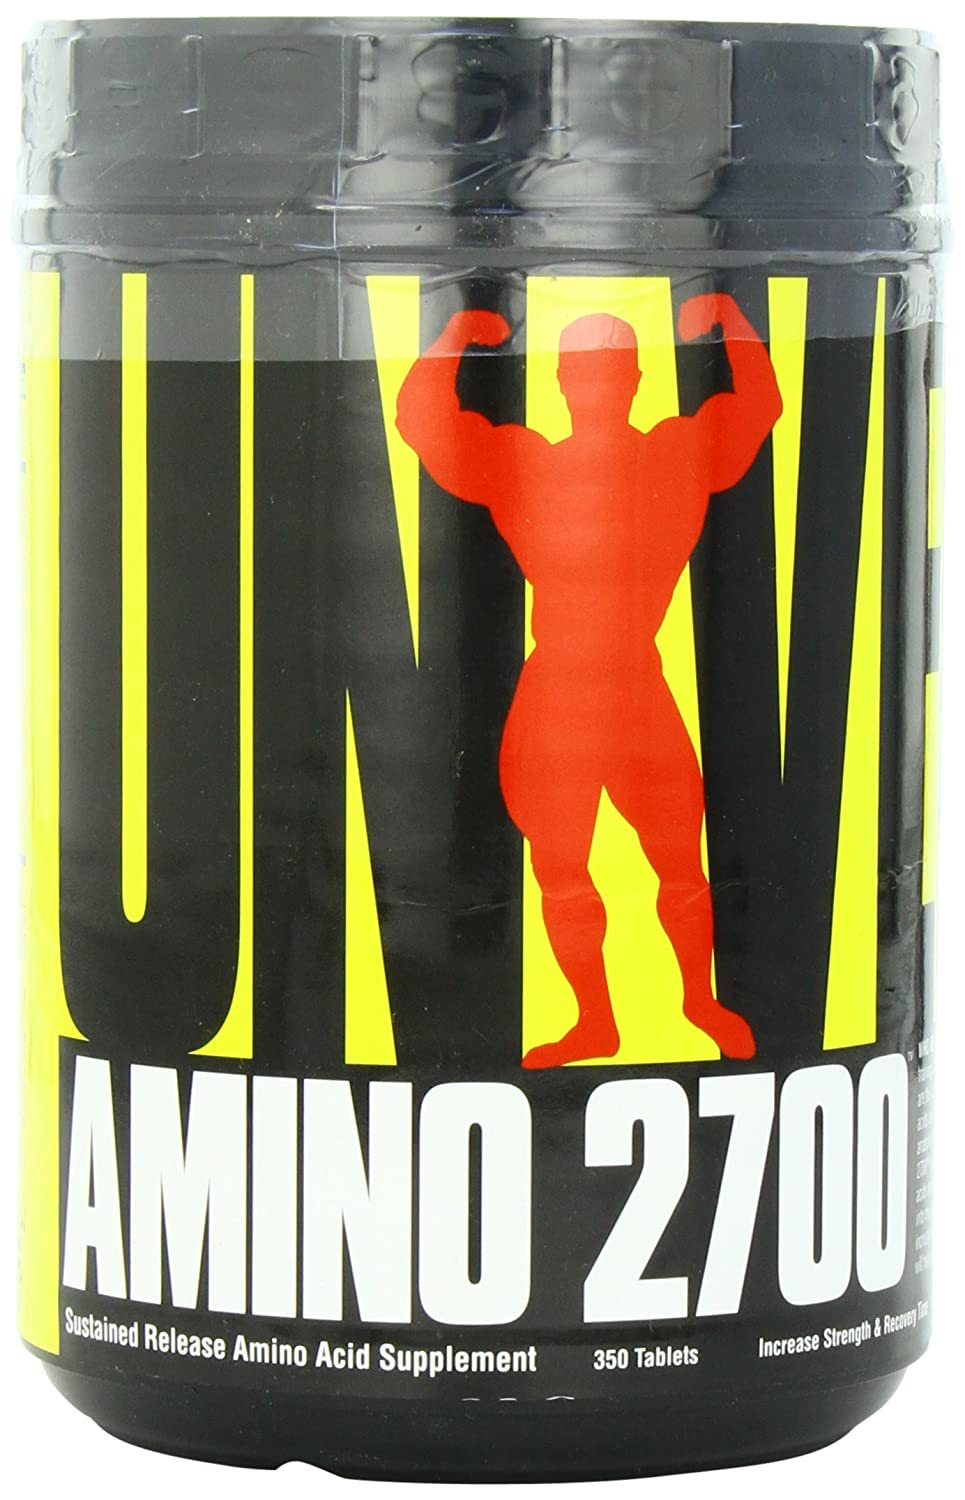 Amazon.com: Universal Nutrition Amino 2700, 350 Tablets: Health & Personal Care